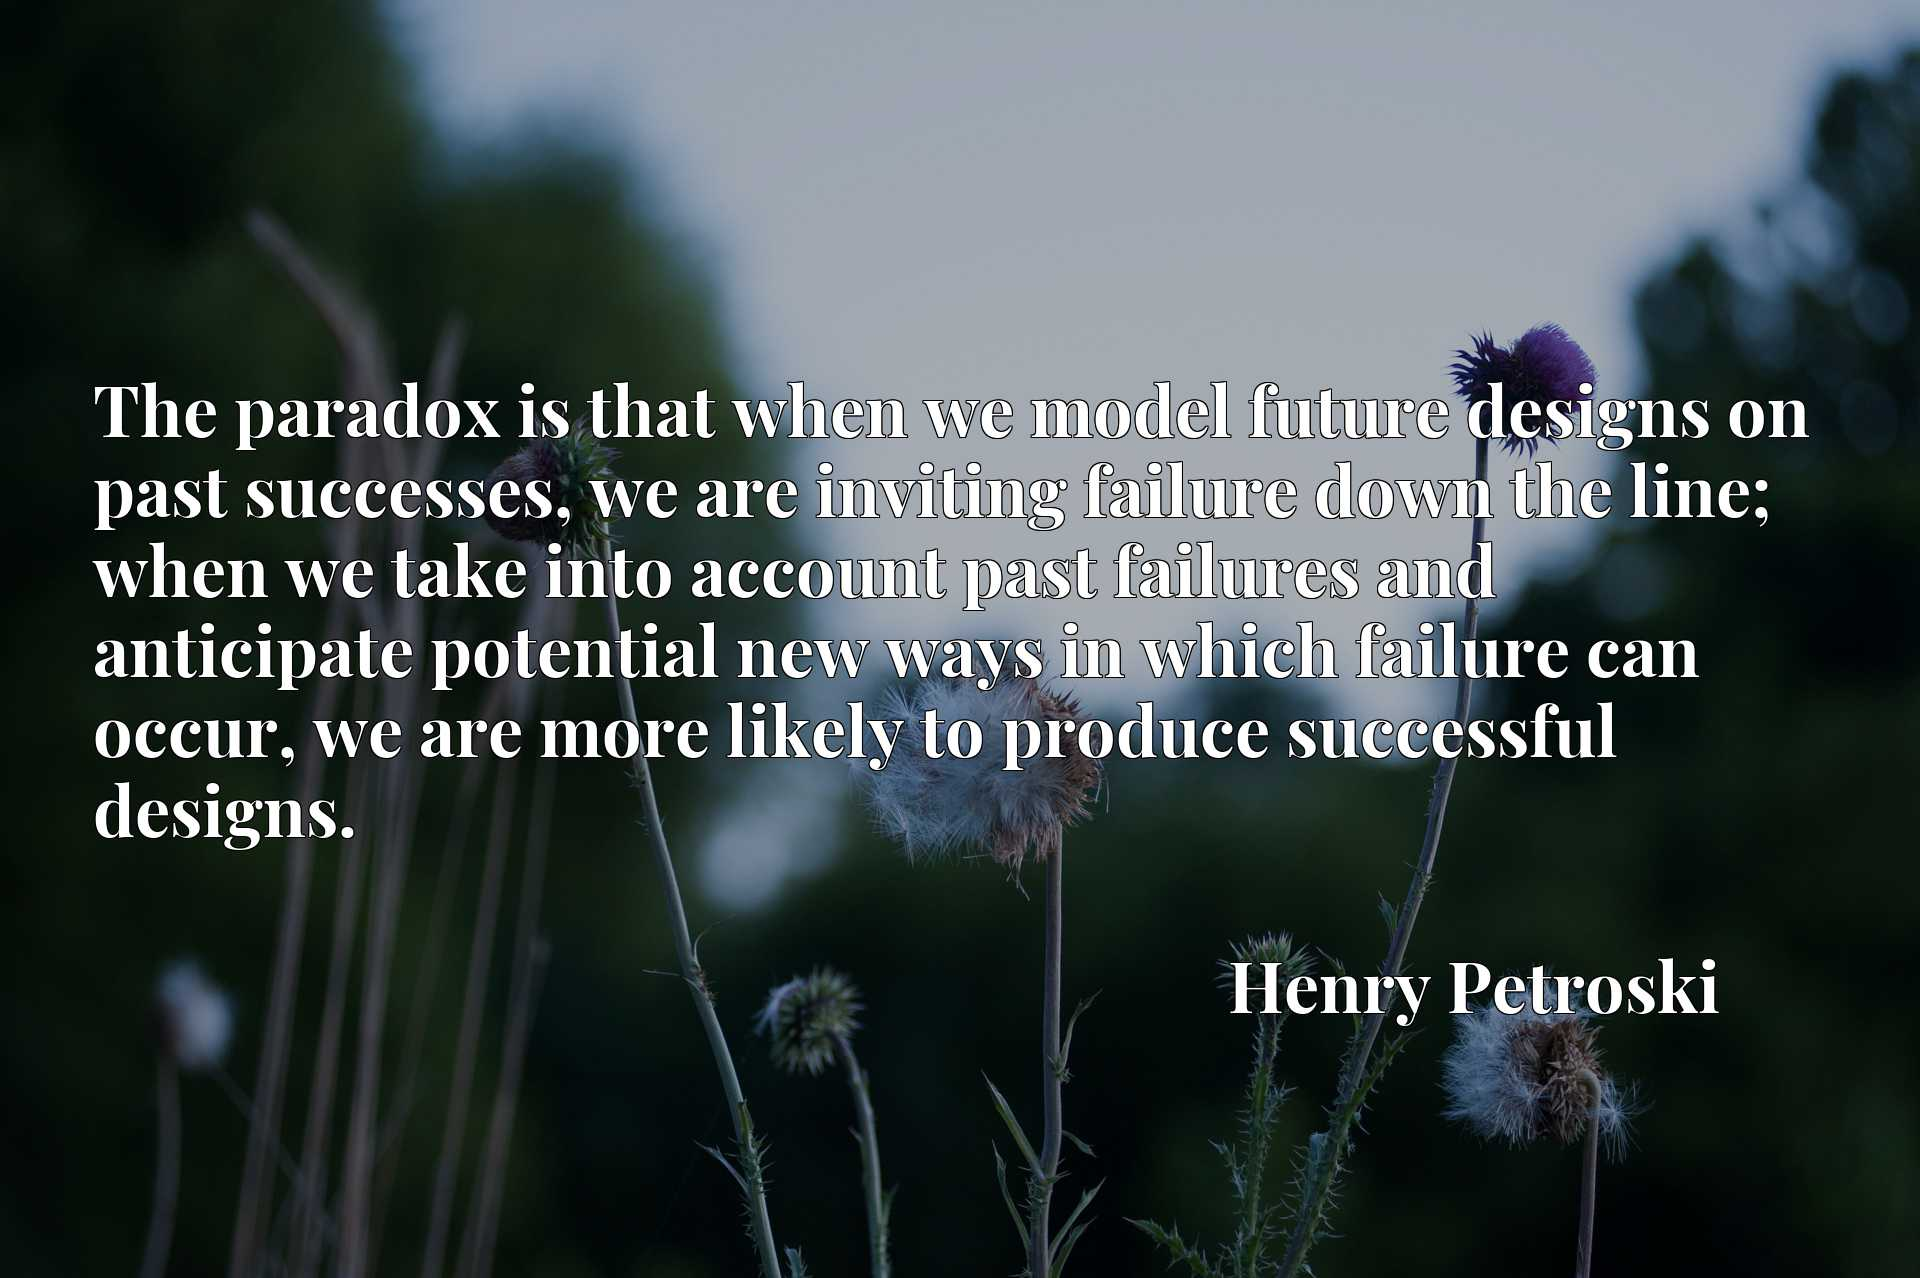 The paradox is that when we model future designs on past successes, we are inviting failure down the line; when we take into account past failures and anticipate potential new ways in which failure can occur, we are more likely to produce successful designs.